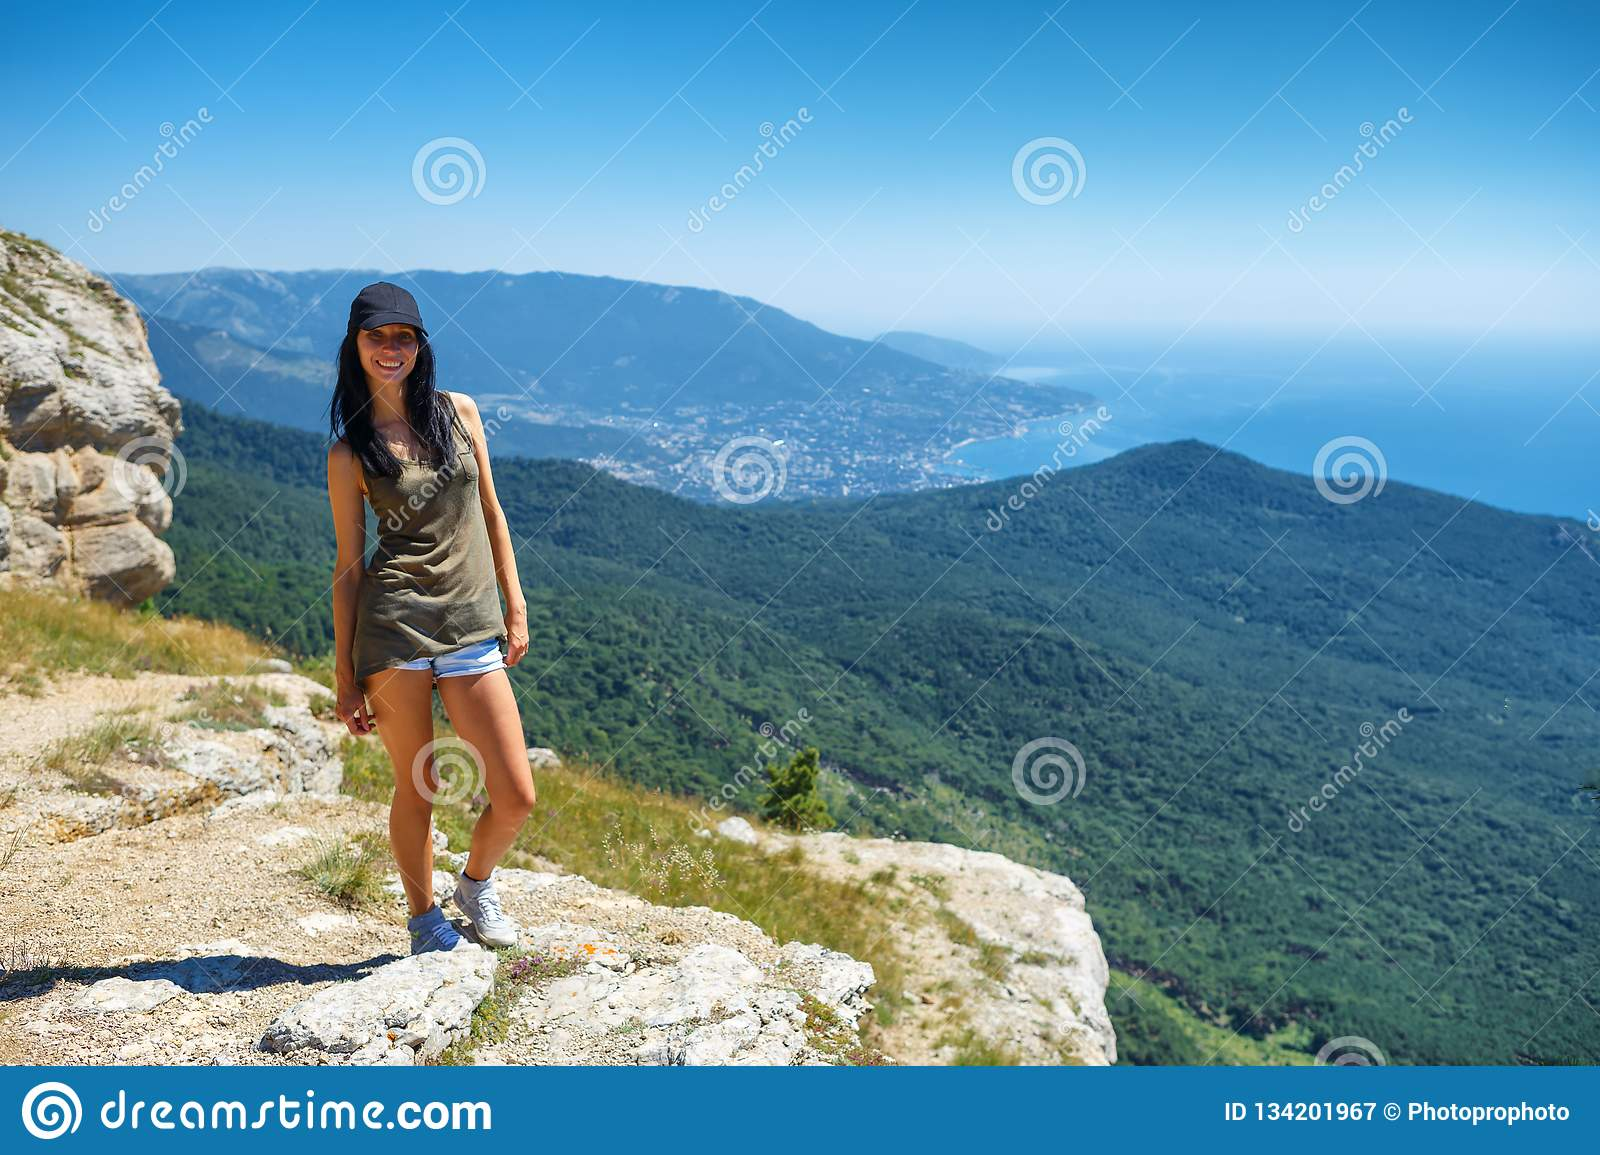 Beautiful woman in shorts standing on a cliff with a beautiful view, the concept of tourism and travel